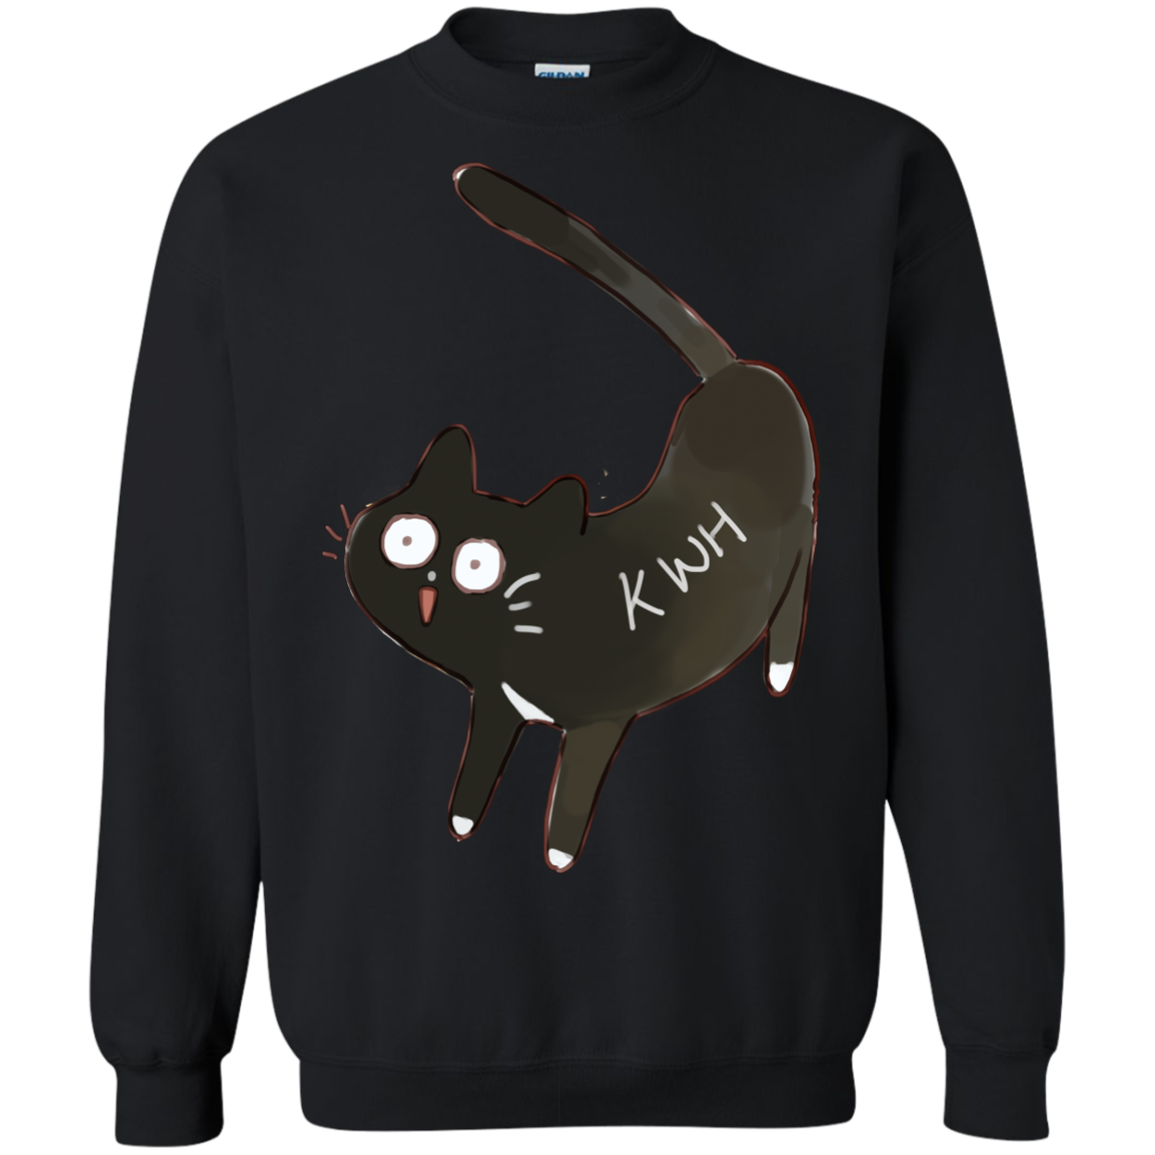 Cool Black Cat T shirts Hoodies Gifts For Cat Lovers